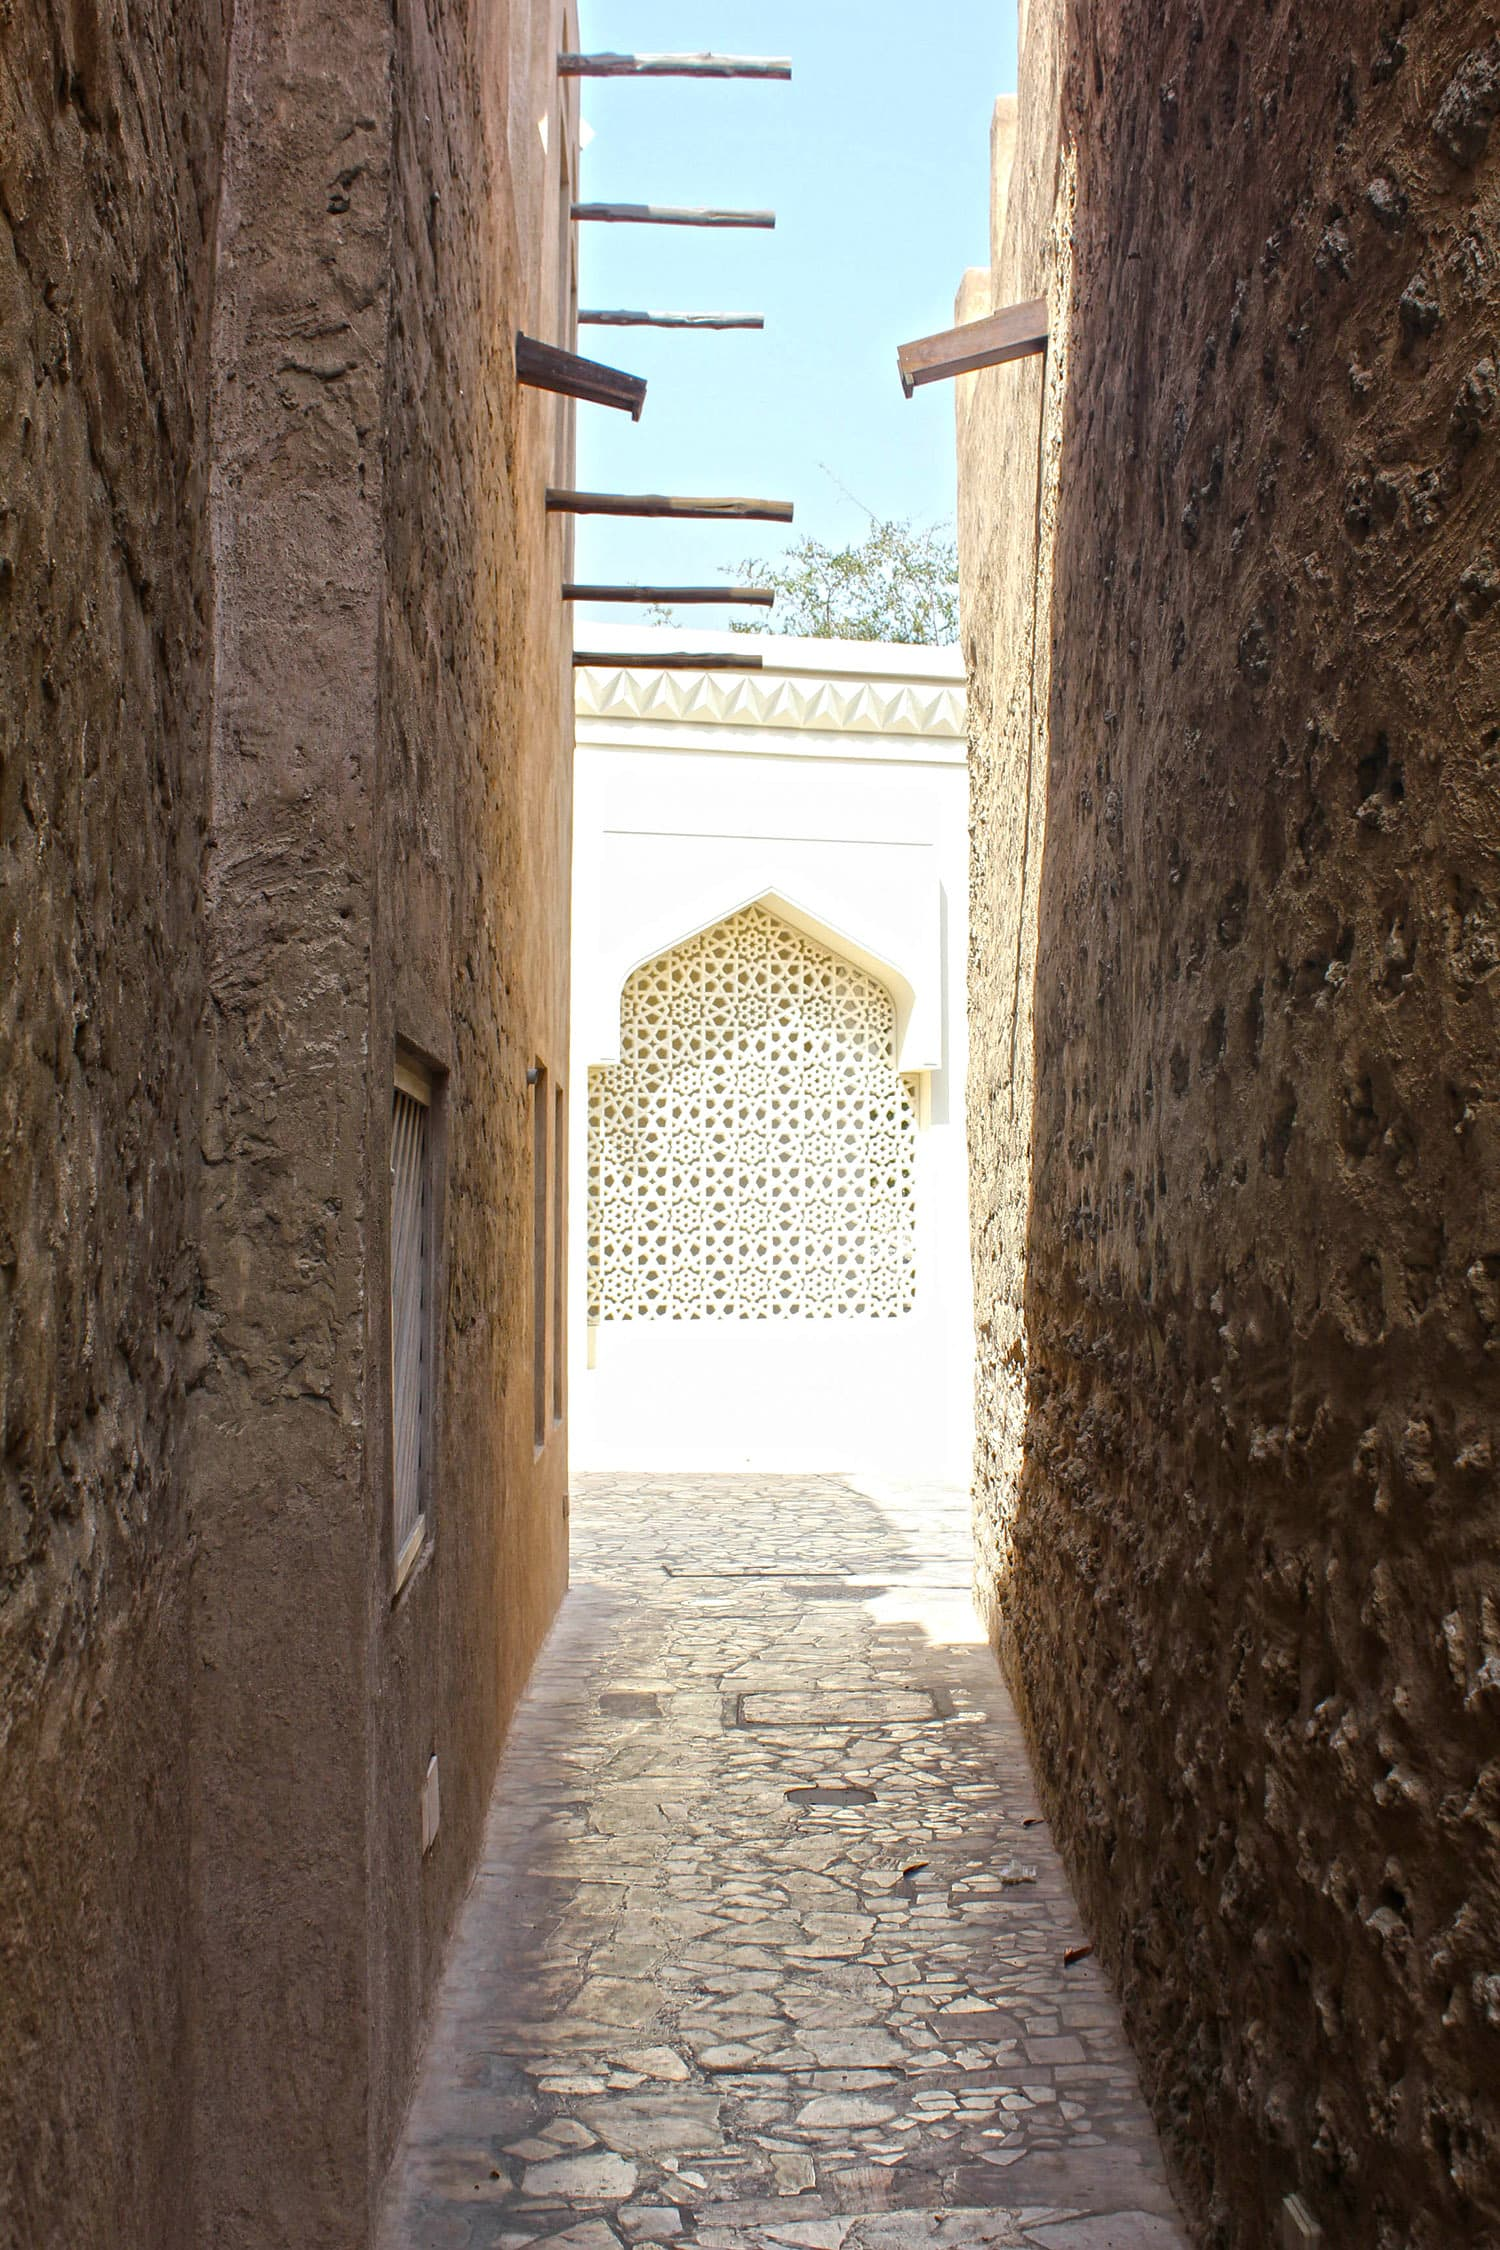 One of the many narrow alleys leading to the mosque in Bastakiya.